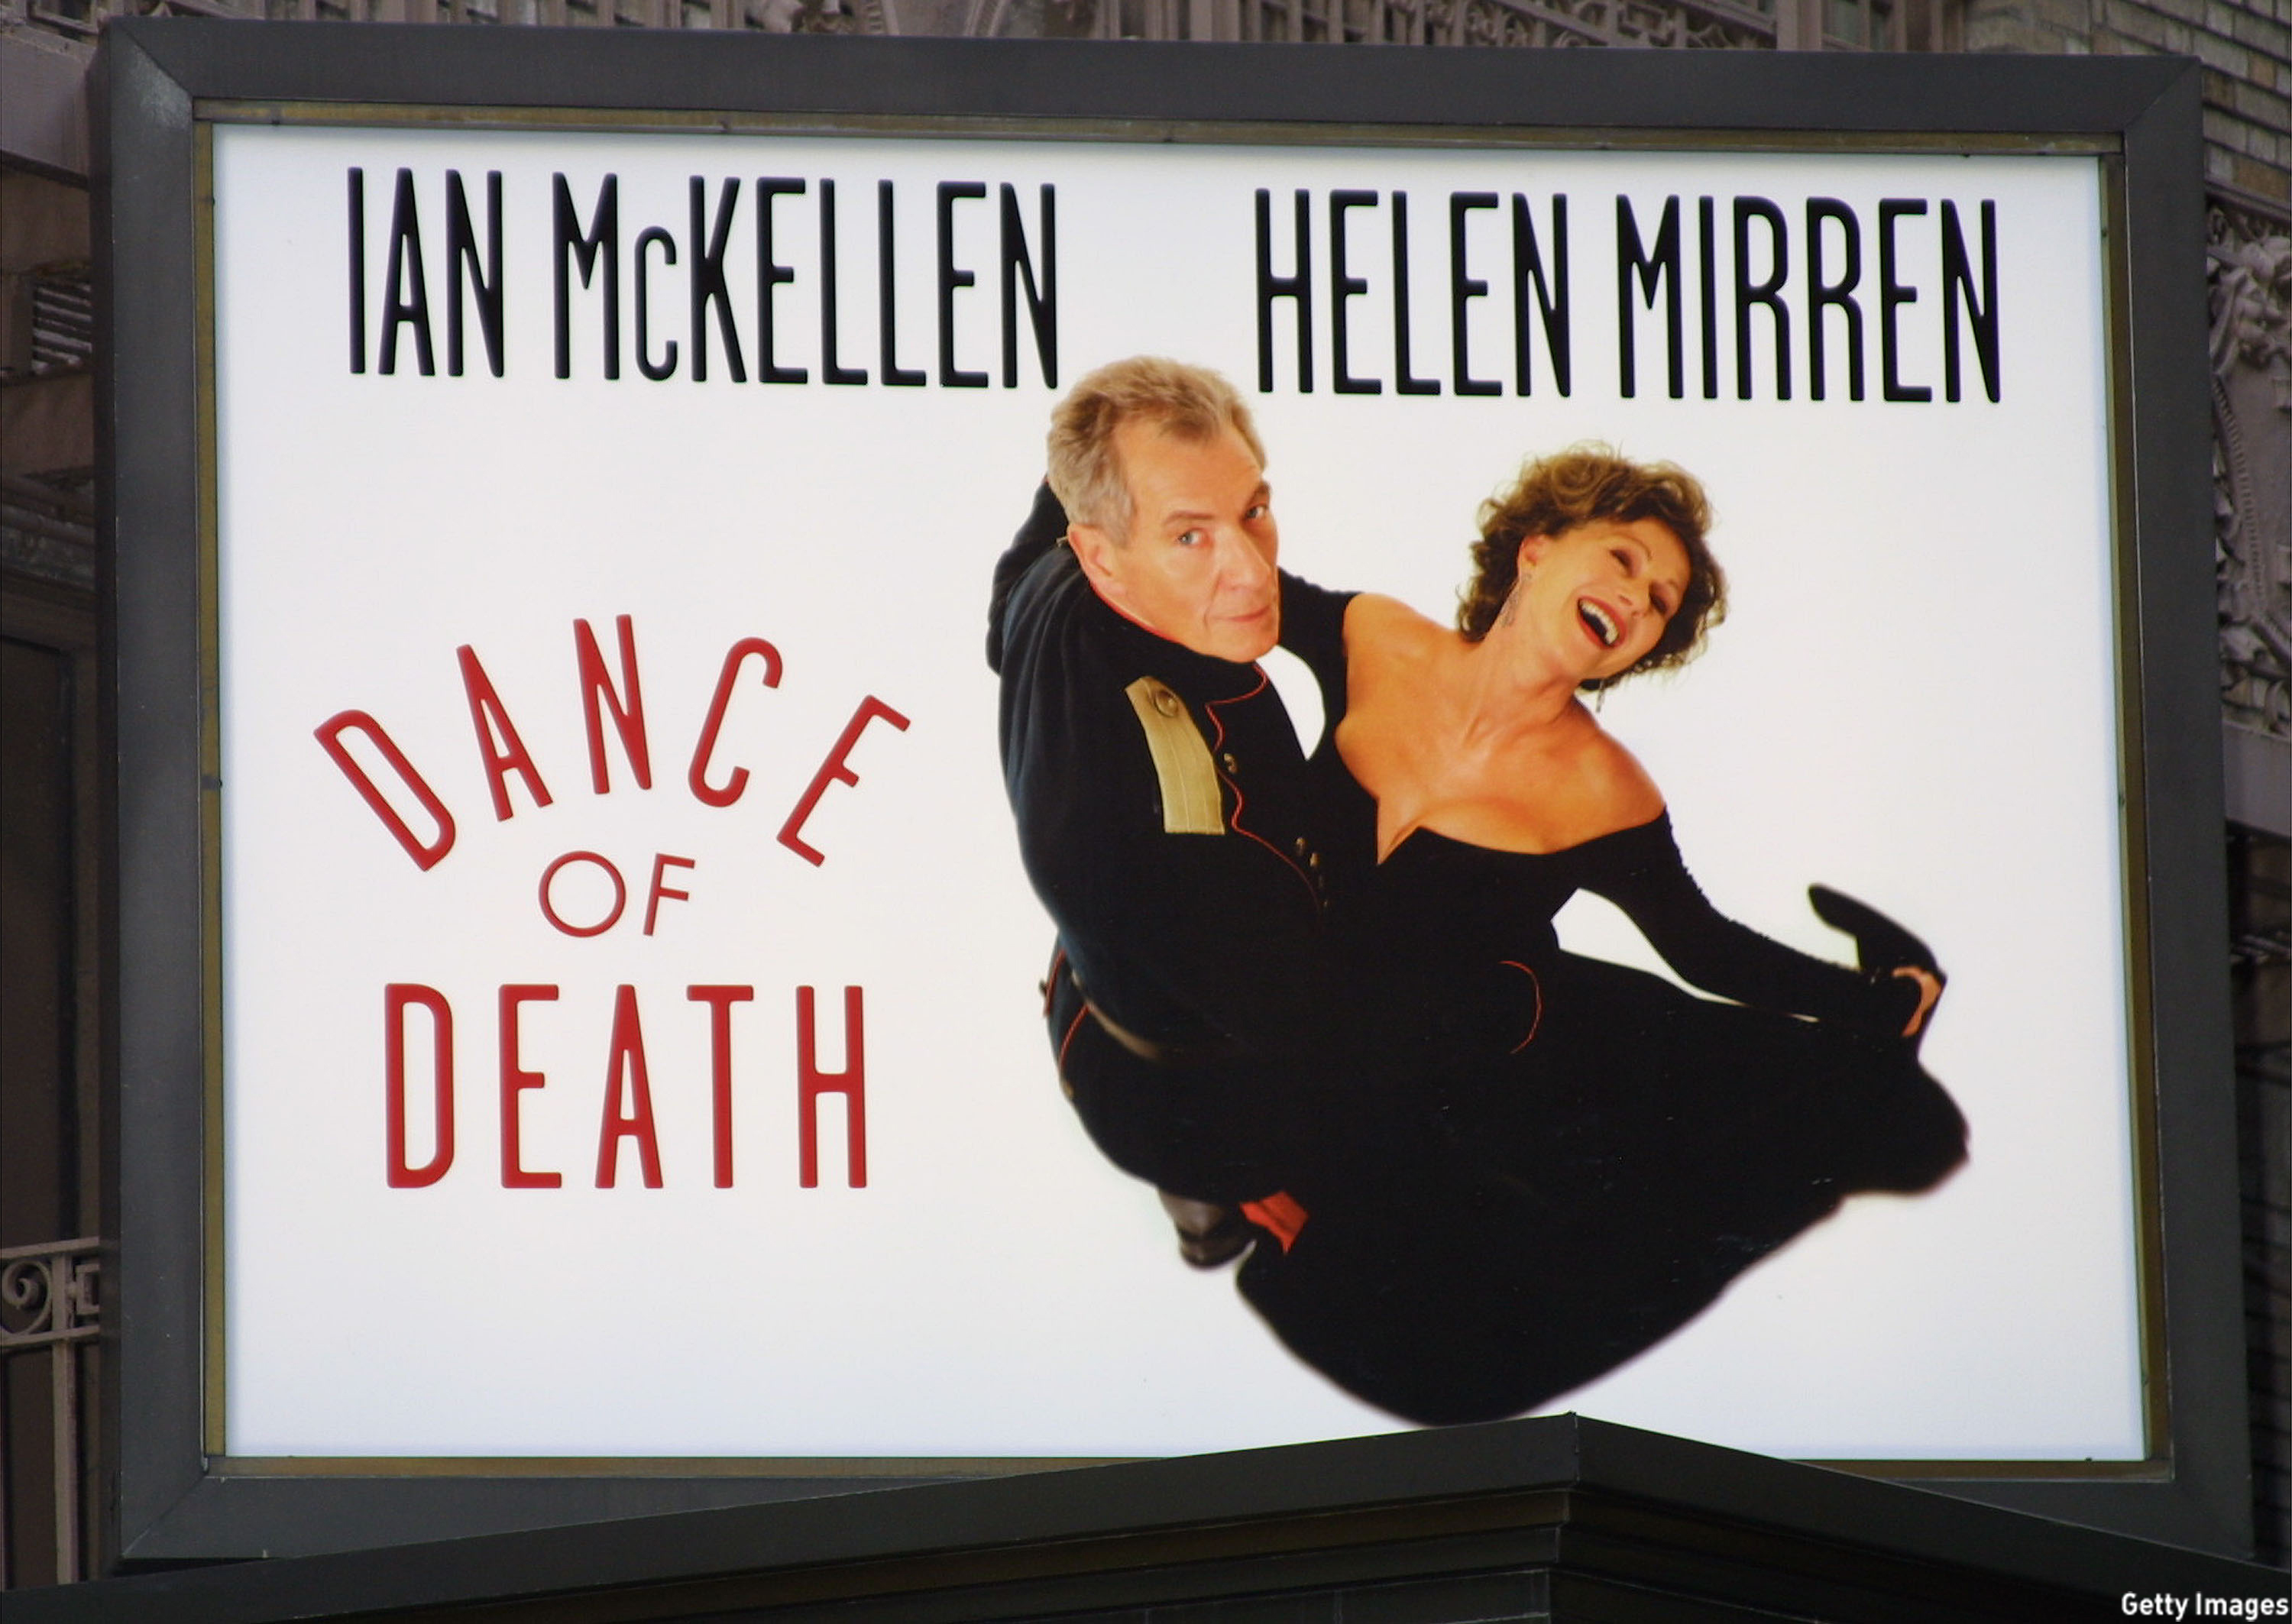 In 2001 McKellen and Dame Helen Mirren were spotted on the marquee for the Broadway play 'Dance of Death.' (George De Sota/Getty Images)